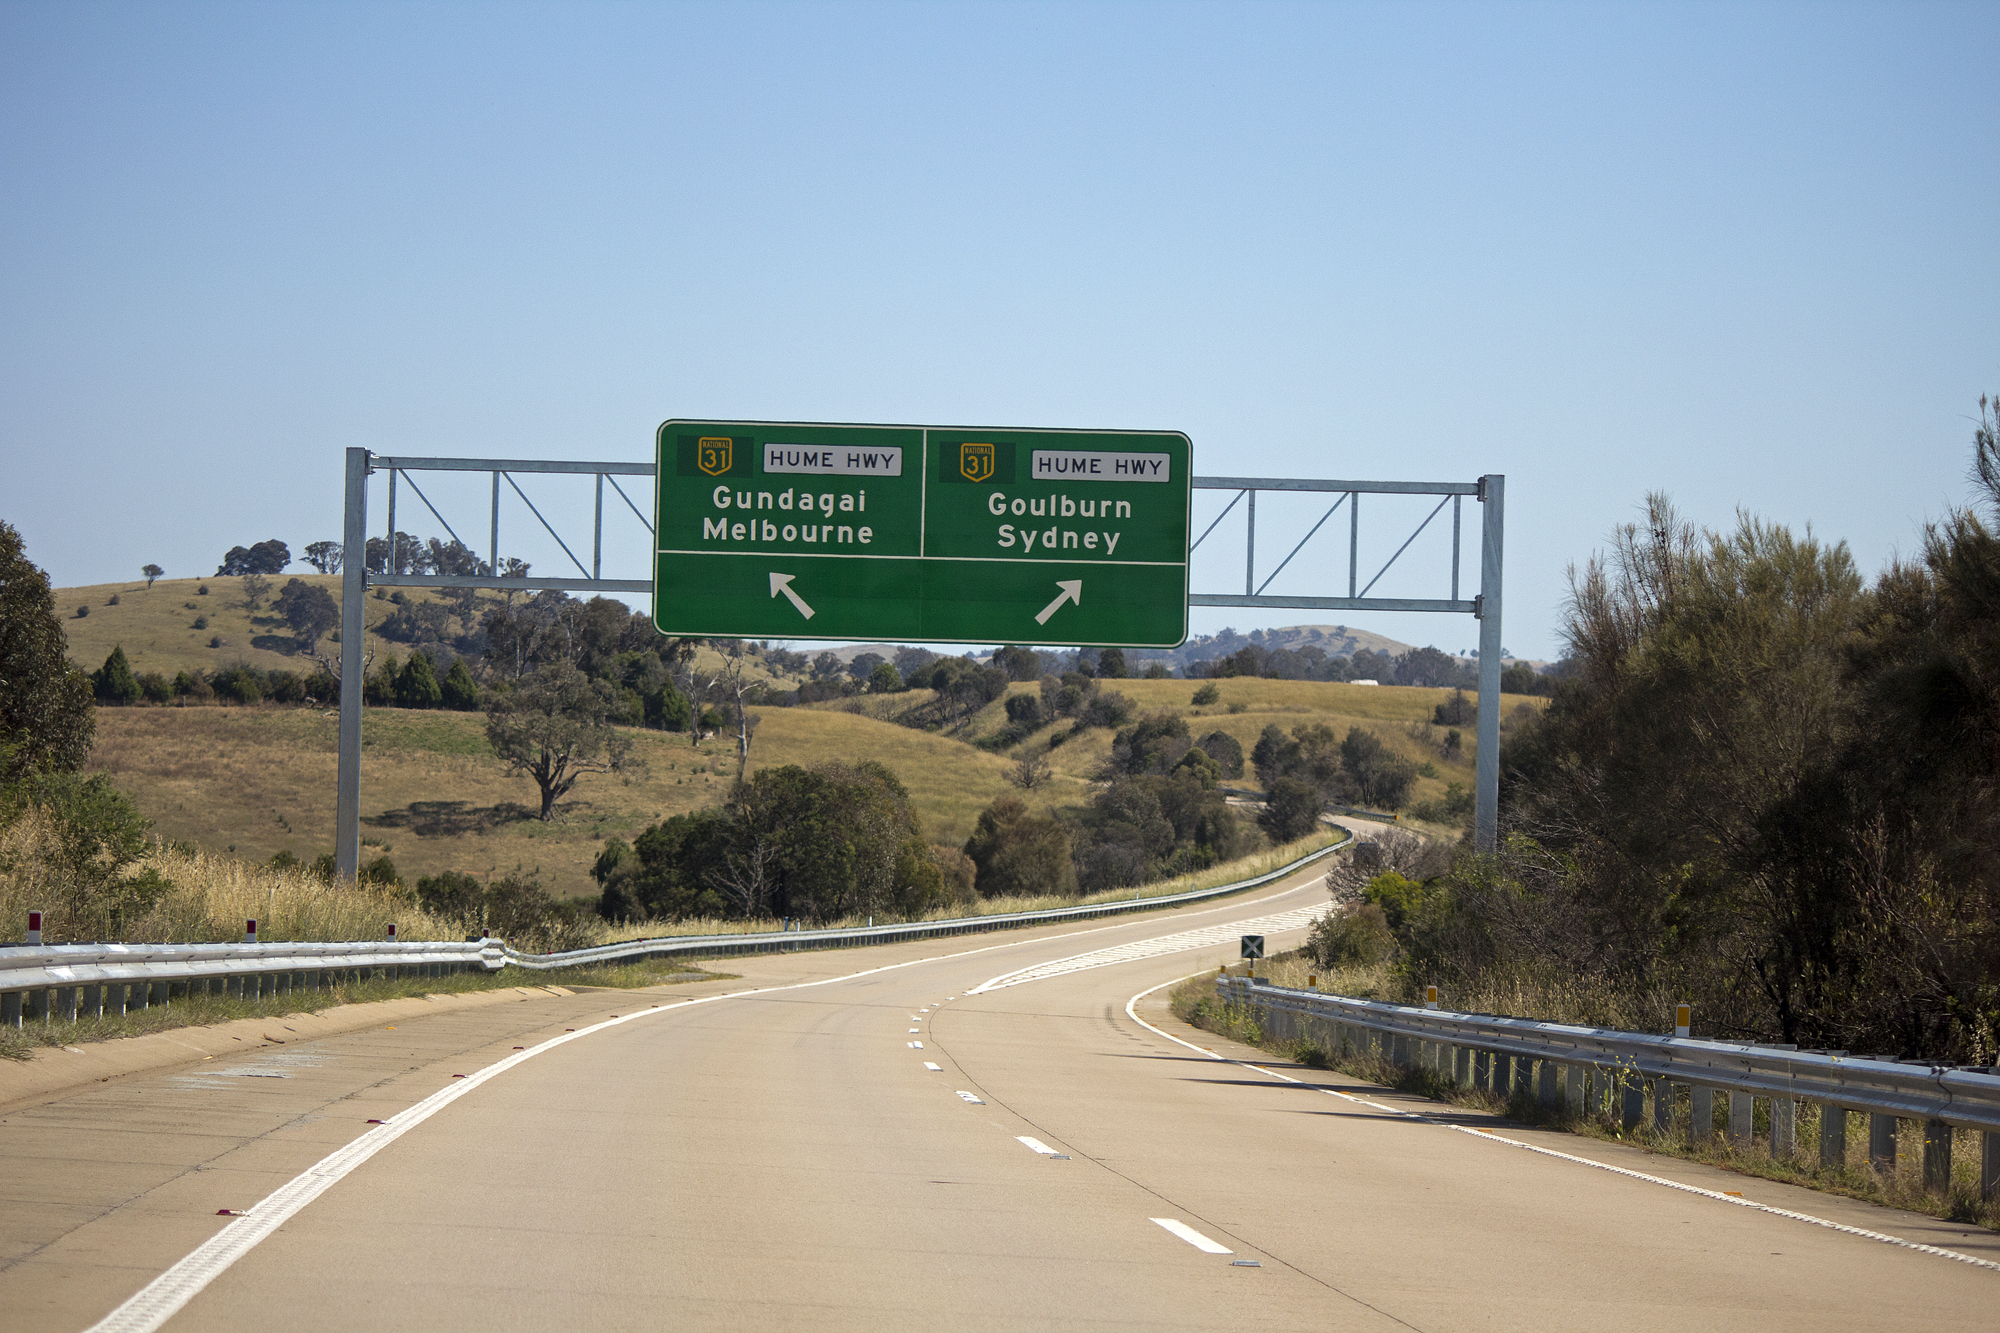 https://upload.wikimedia.org/wikipedia/commons/c/c6/Barton_Highway_near_the_Hume_Highway_exits_%283%29.jpg